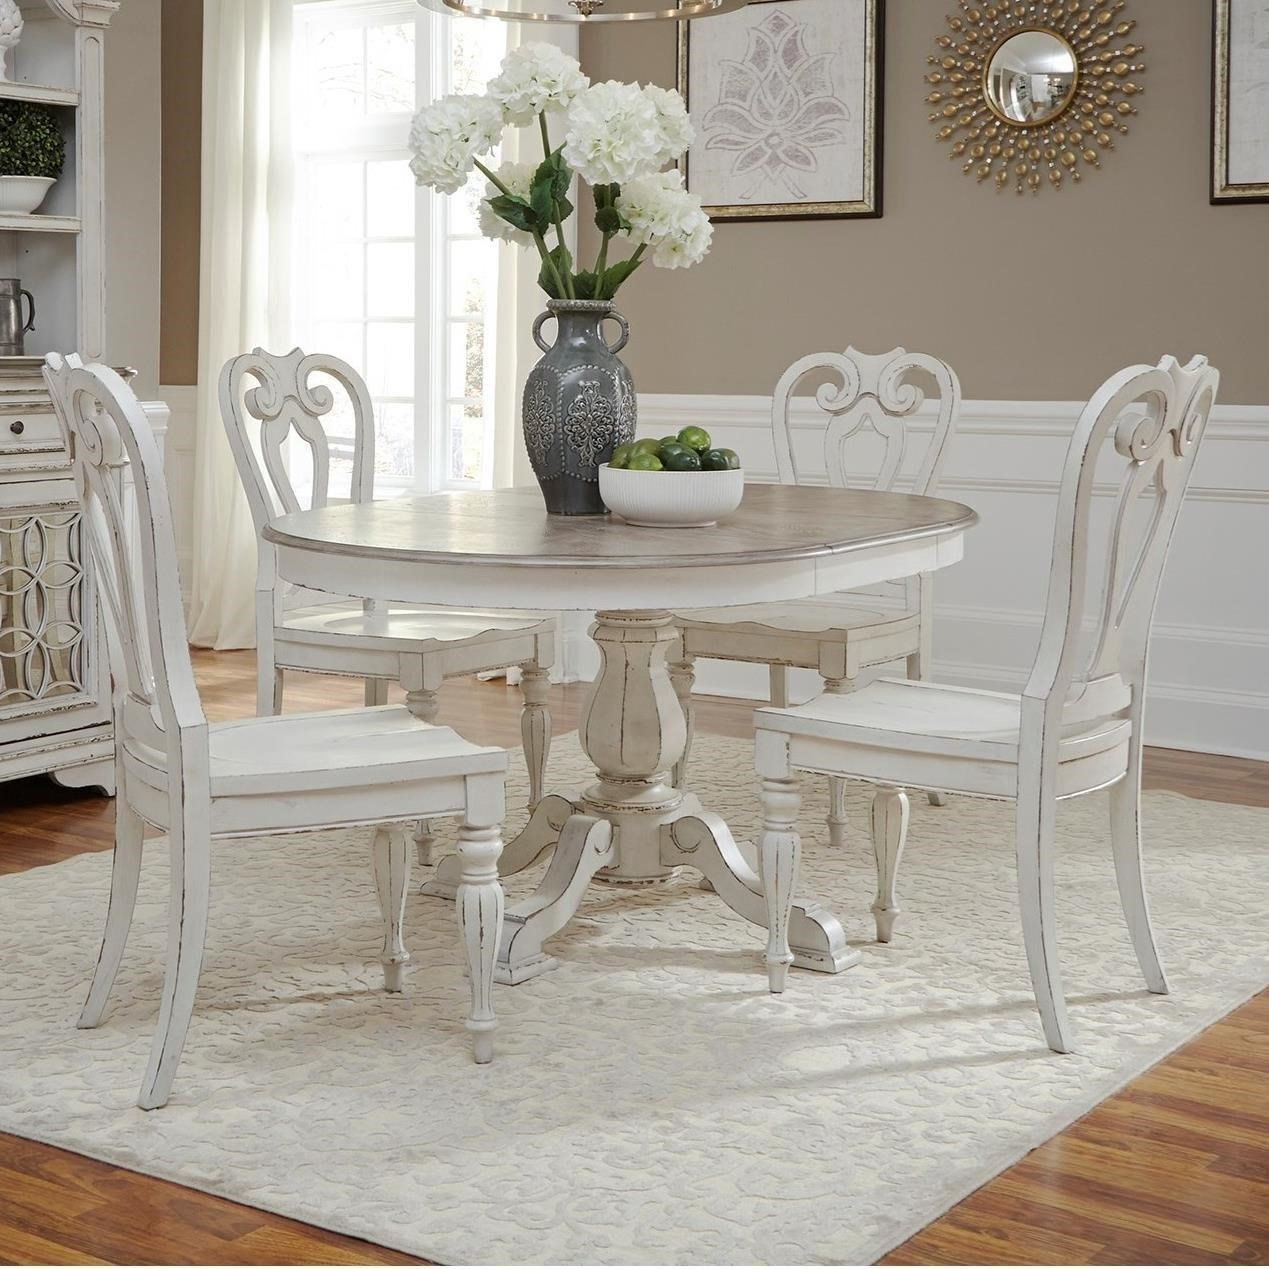 dining table set 6 chairs wheelchair guy that died liberty furniture magnolia manor libe grp 244 ovaltbl oval pedestal and six side